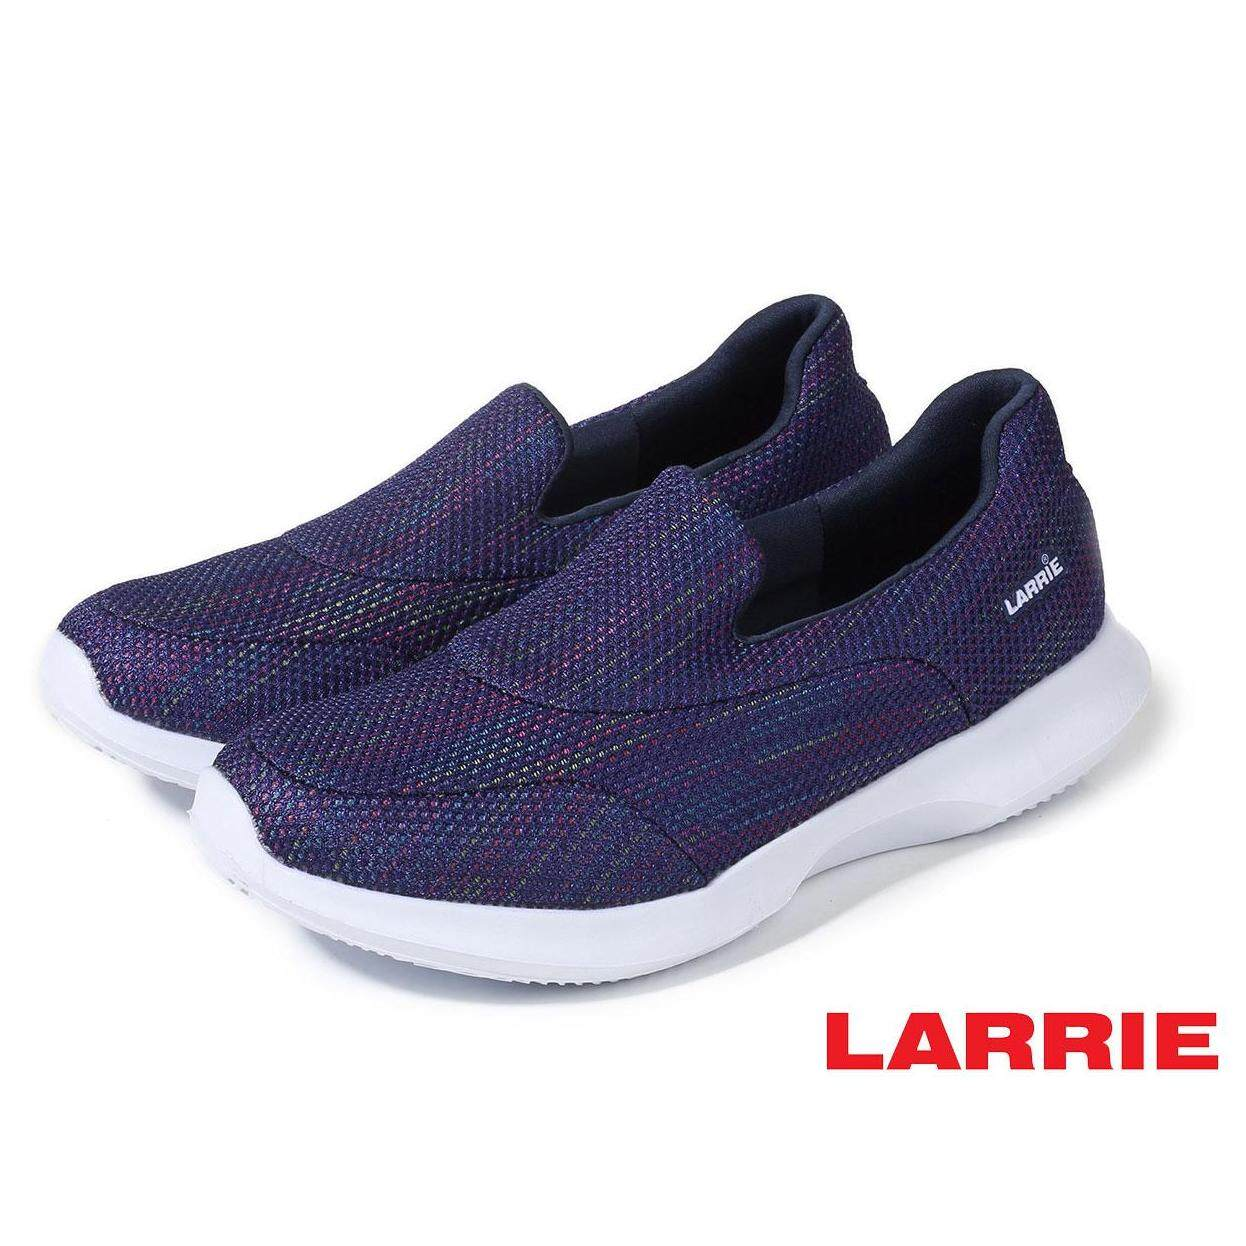 LARRIE Women Cushion Sporty Casual Sneakers - L61913-KN01SV